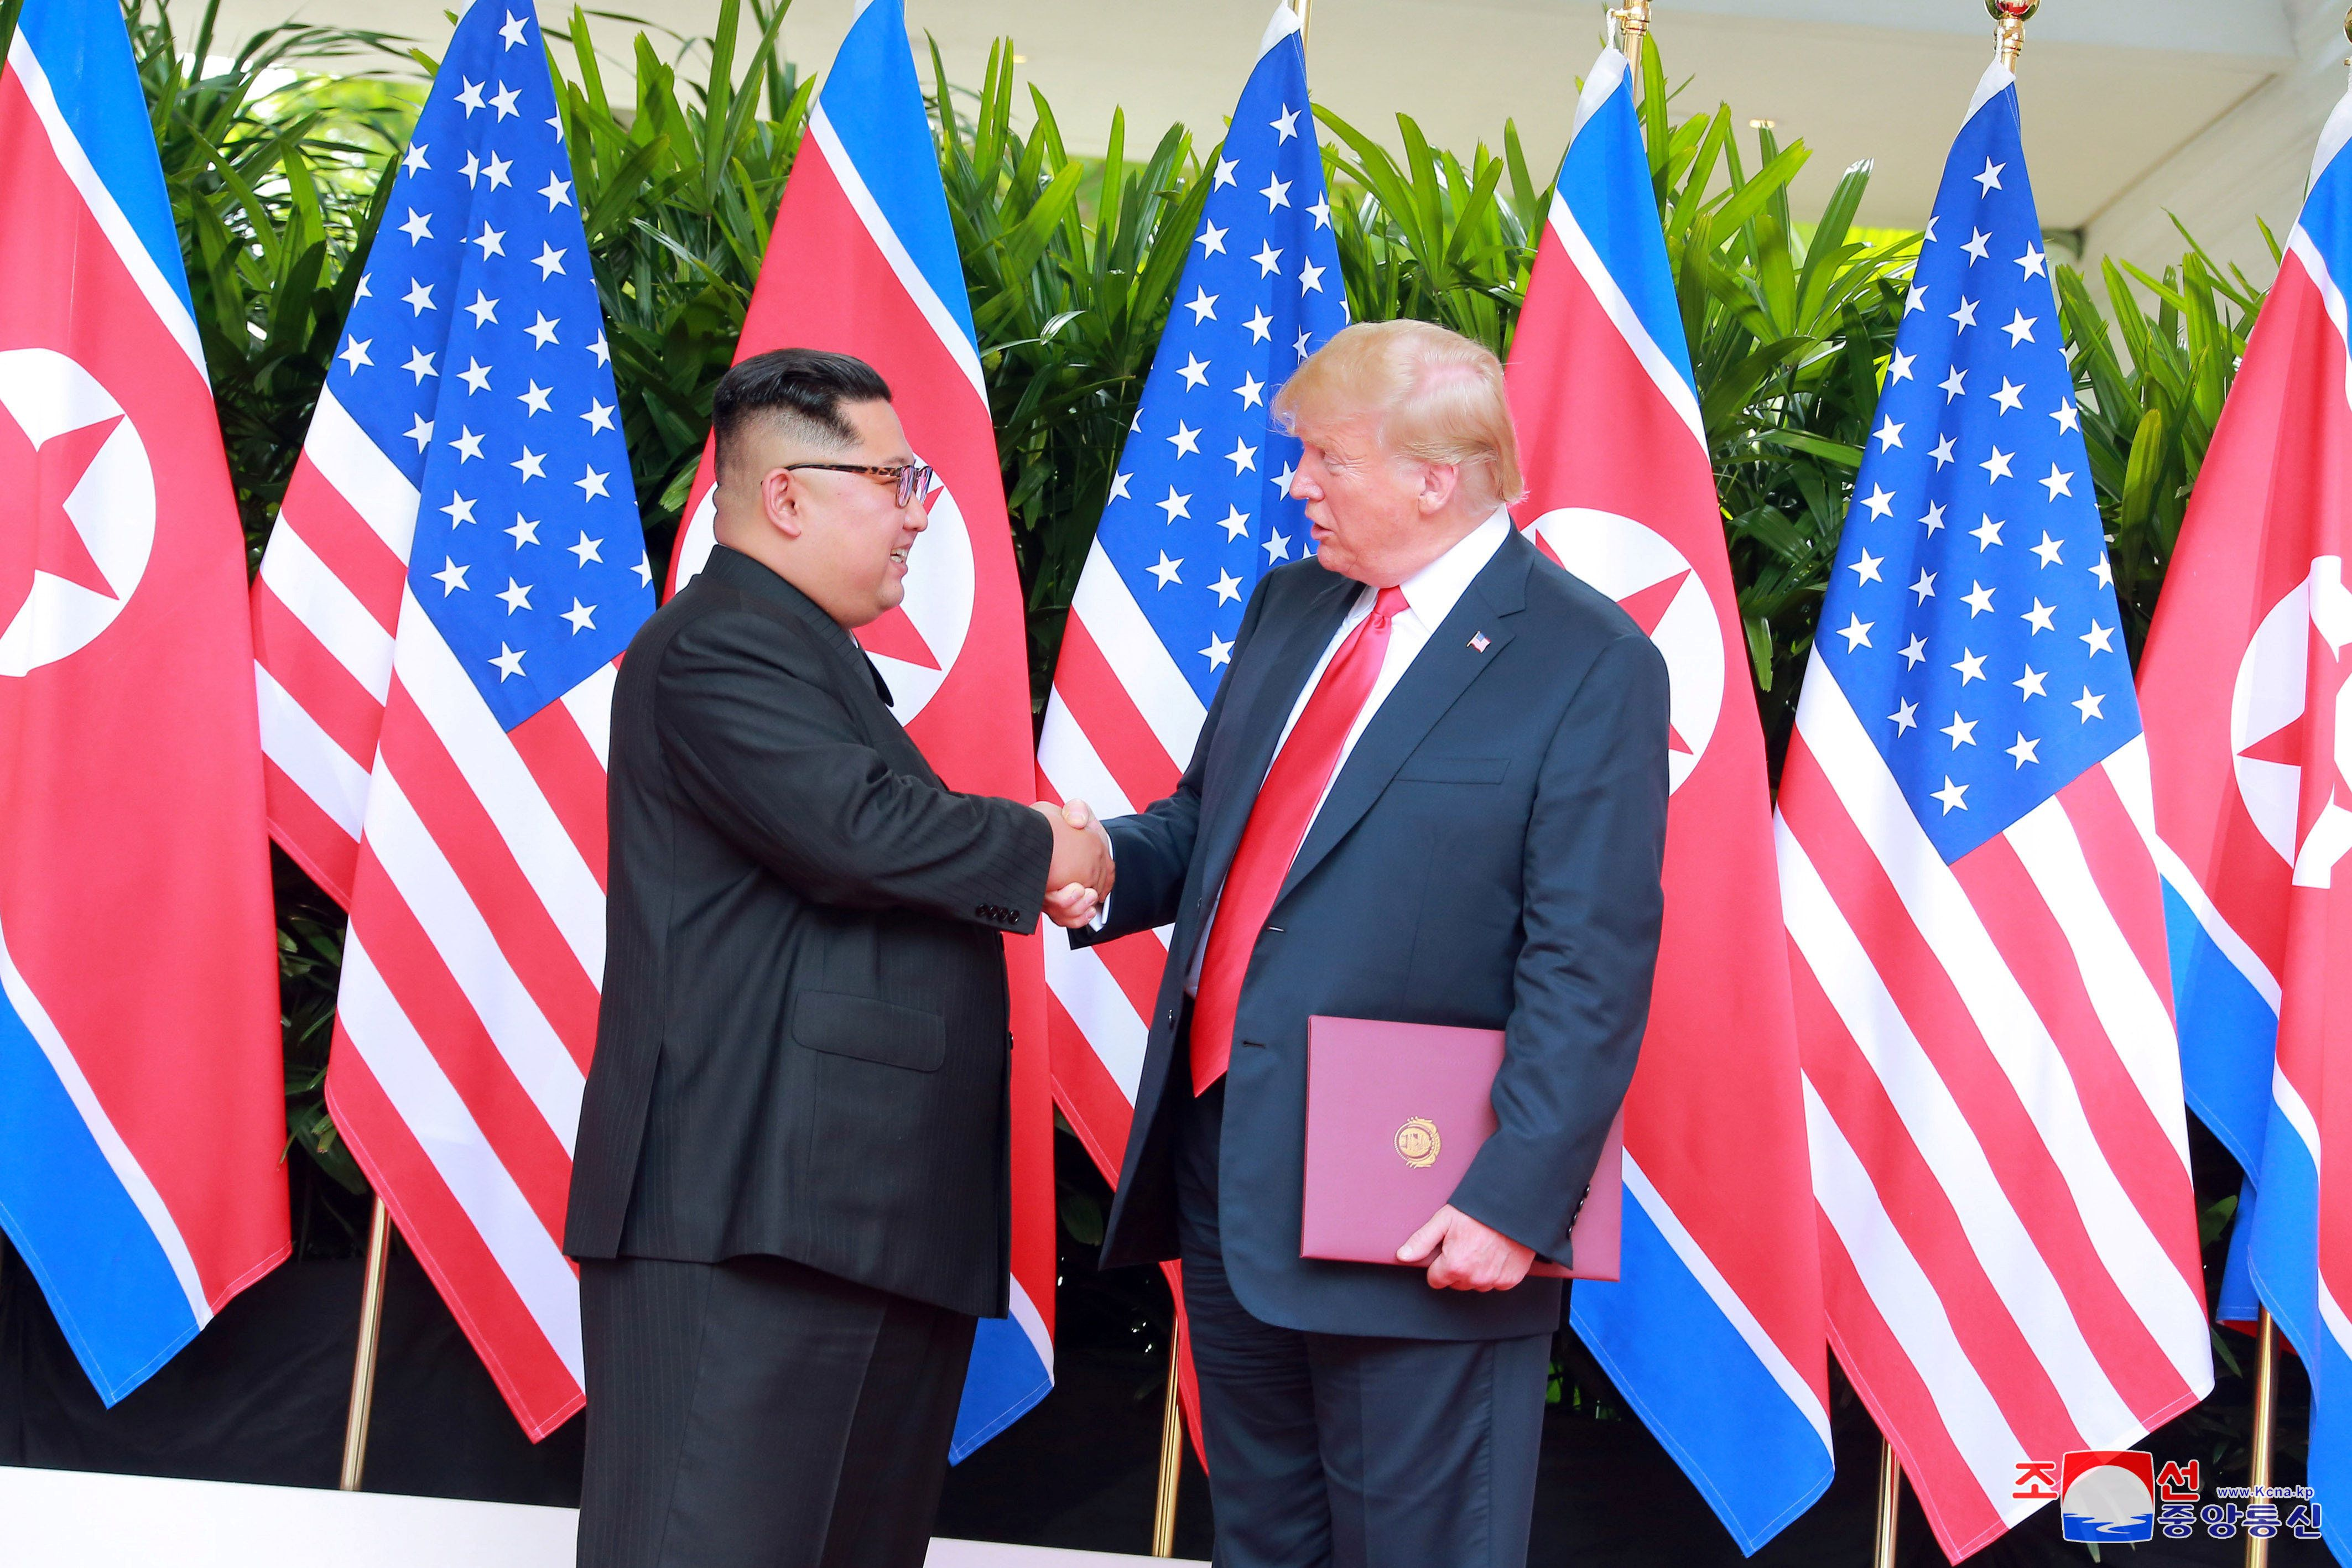 The summit was in stark contrast to a flurry of North Korean nuclear and missile tests and angry exchanges of insults between